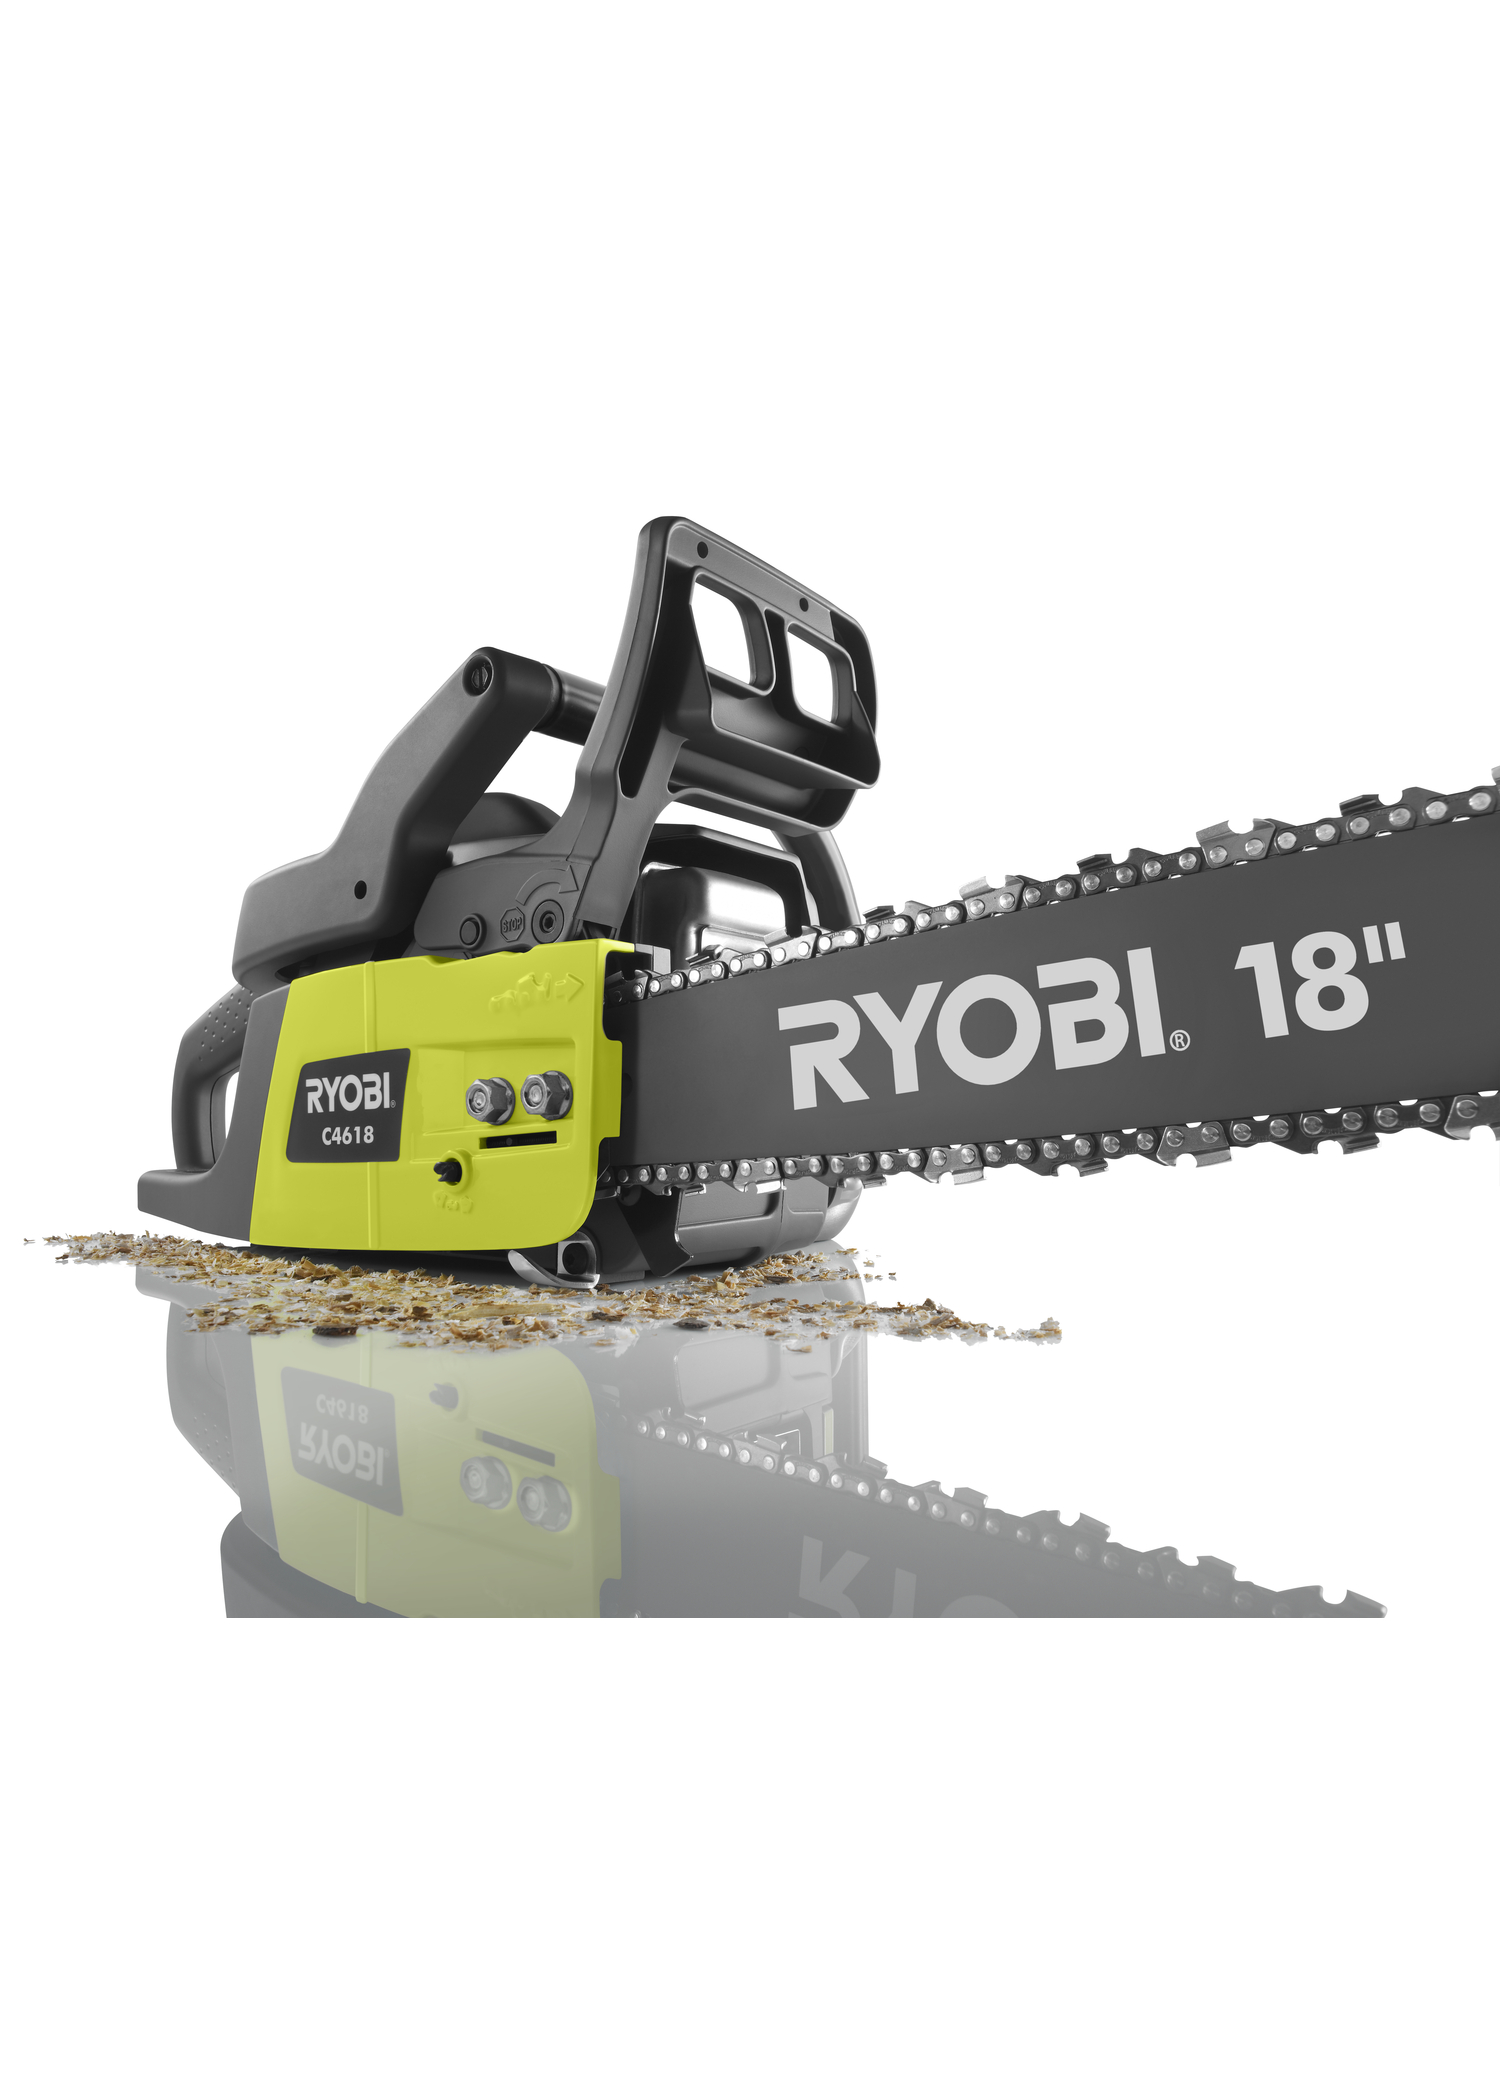 Ryobi Chainsaw Giveaway - BB Product Reviews